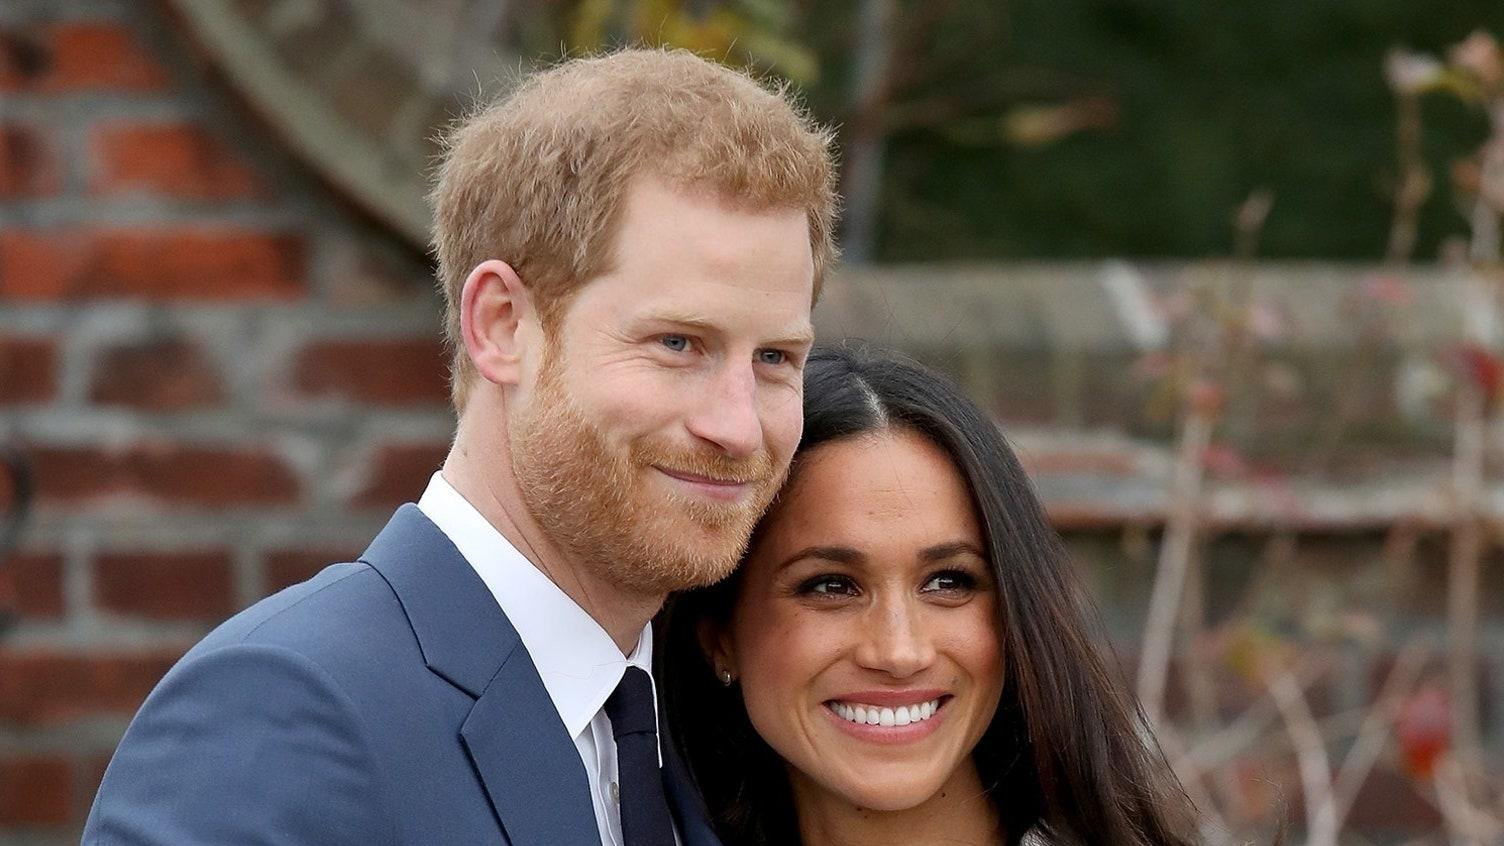 Meghan Markle And Prince Harry: Source Says The Inauguration Is 'Very Personal' For Them - Here's Why!